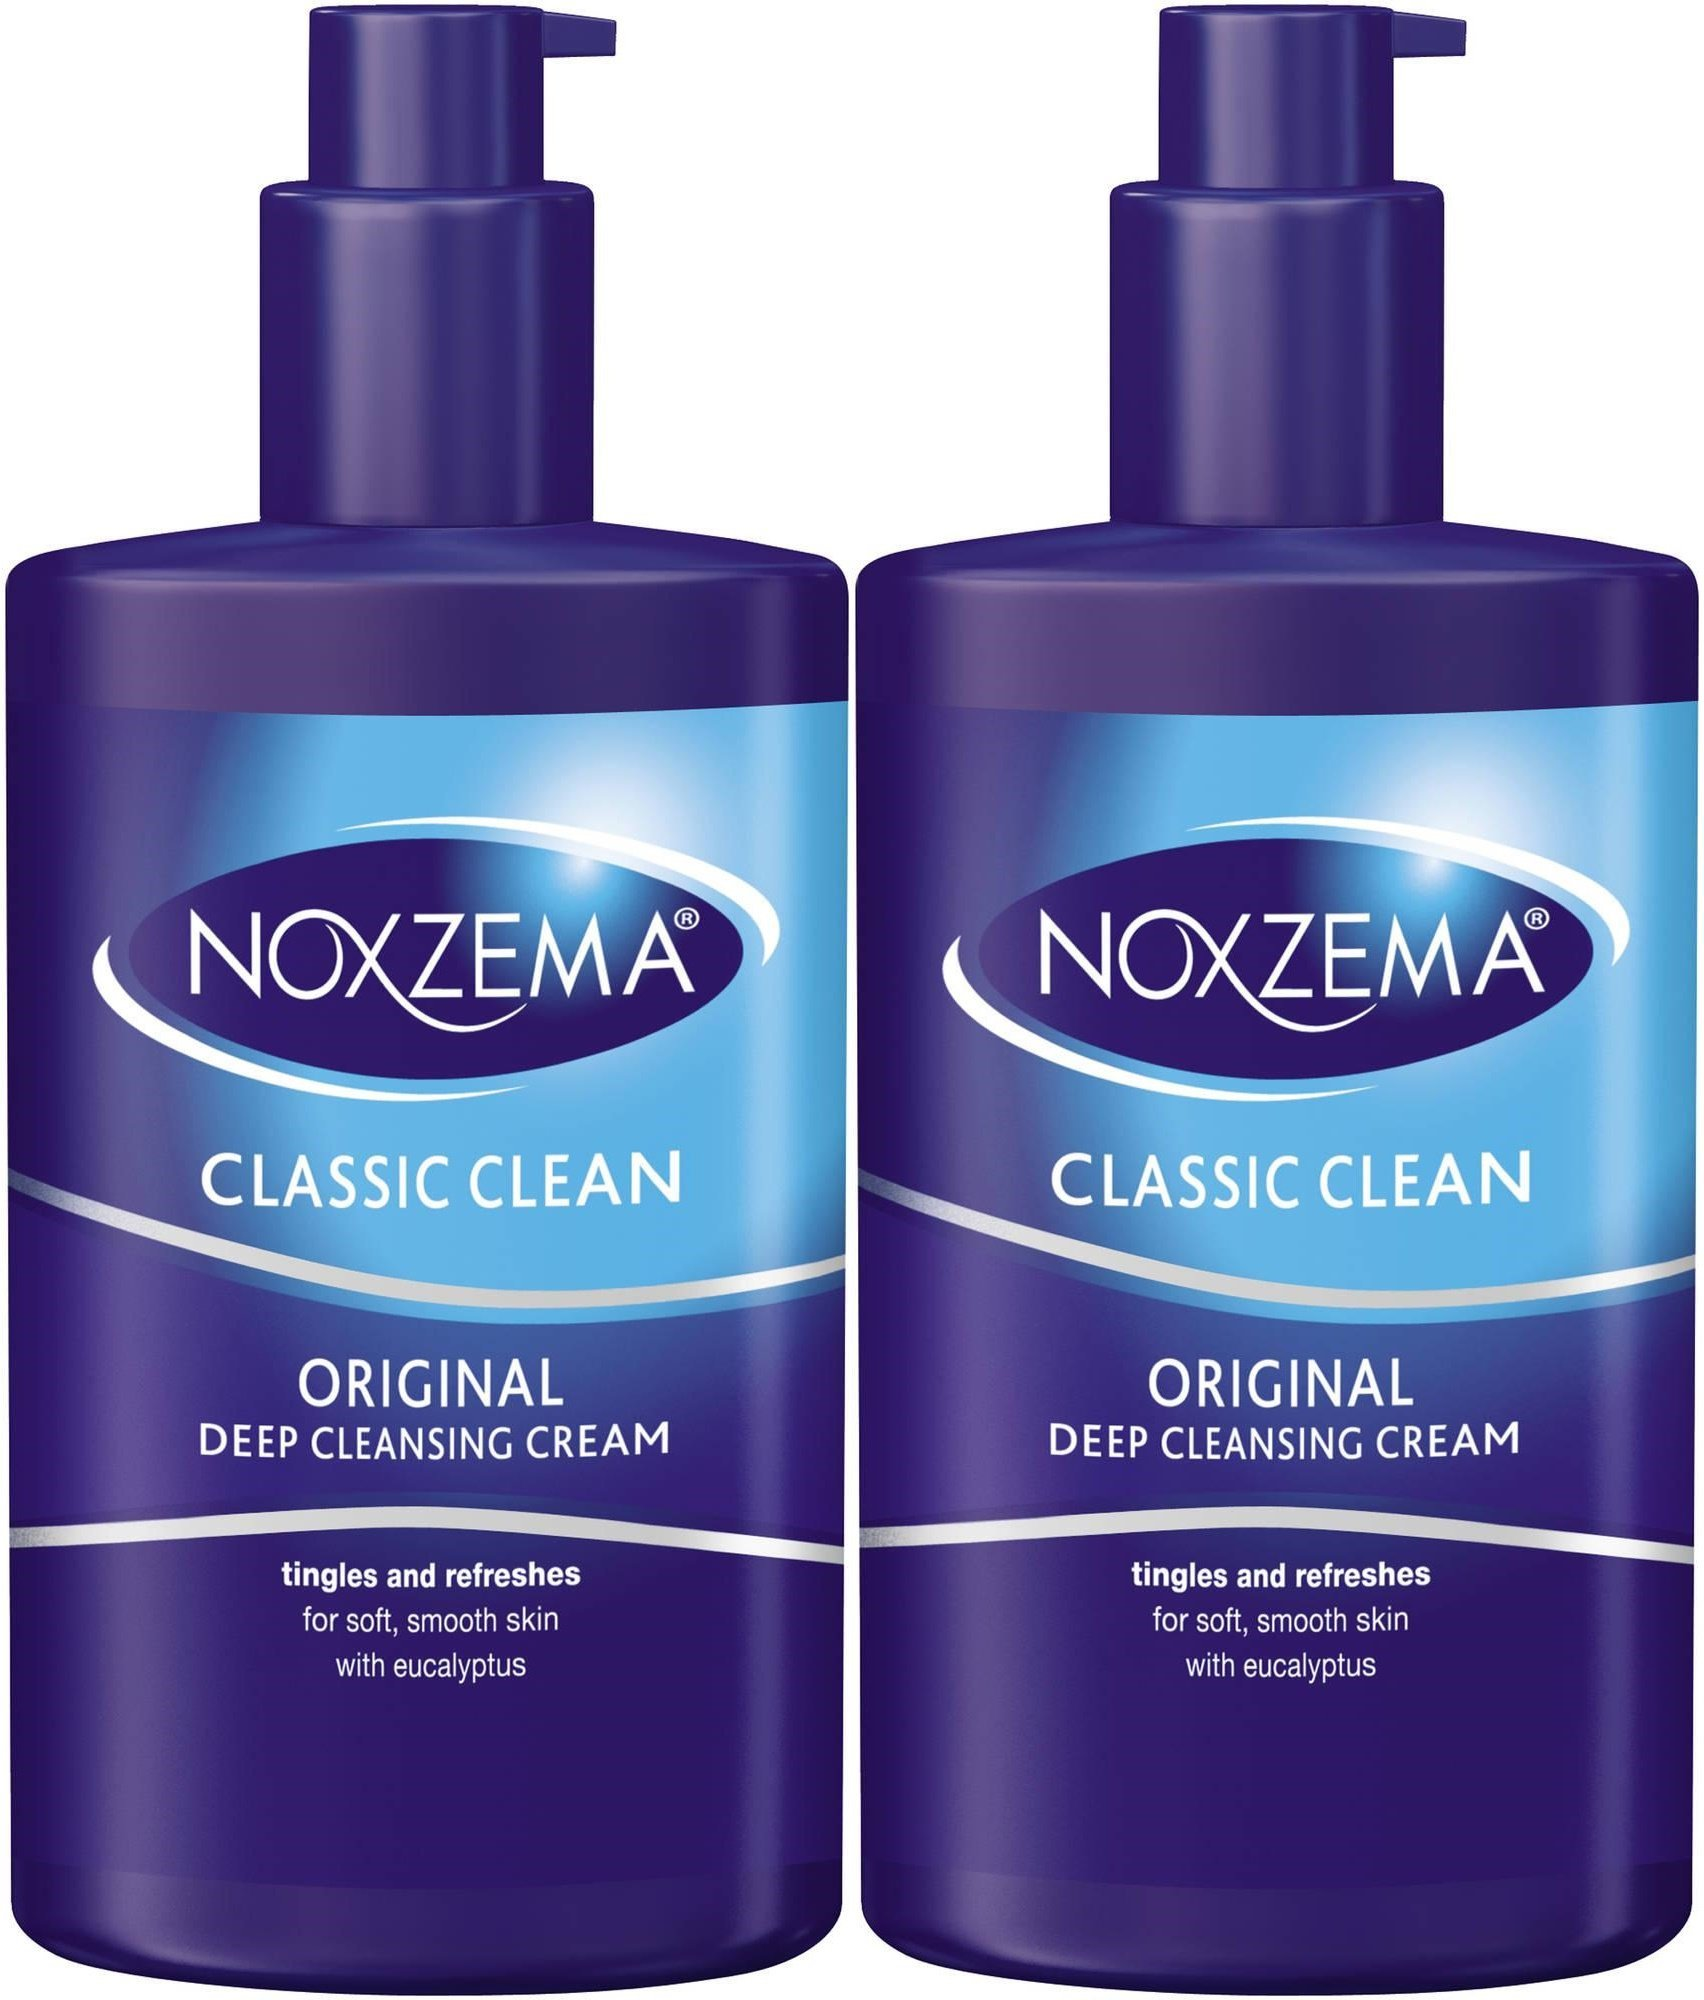 Noxzema Clean Moisture Deep Cleansing Cream, 8 Ounce Pump (2 Pack)